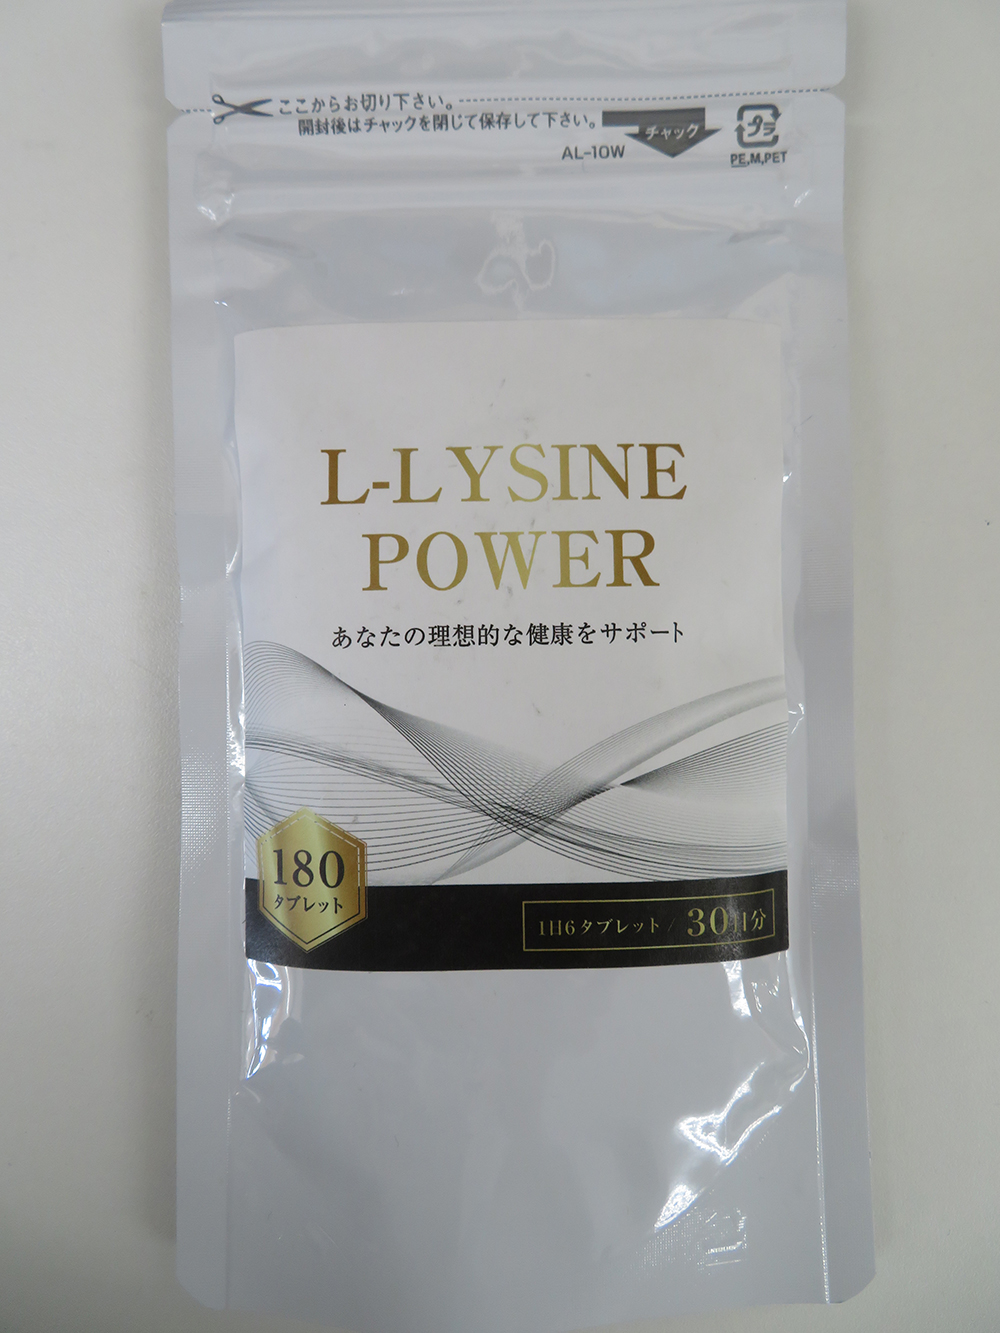 L-LYSINE POWER1